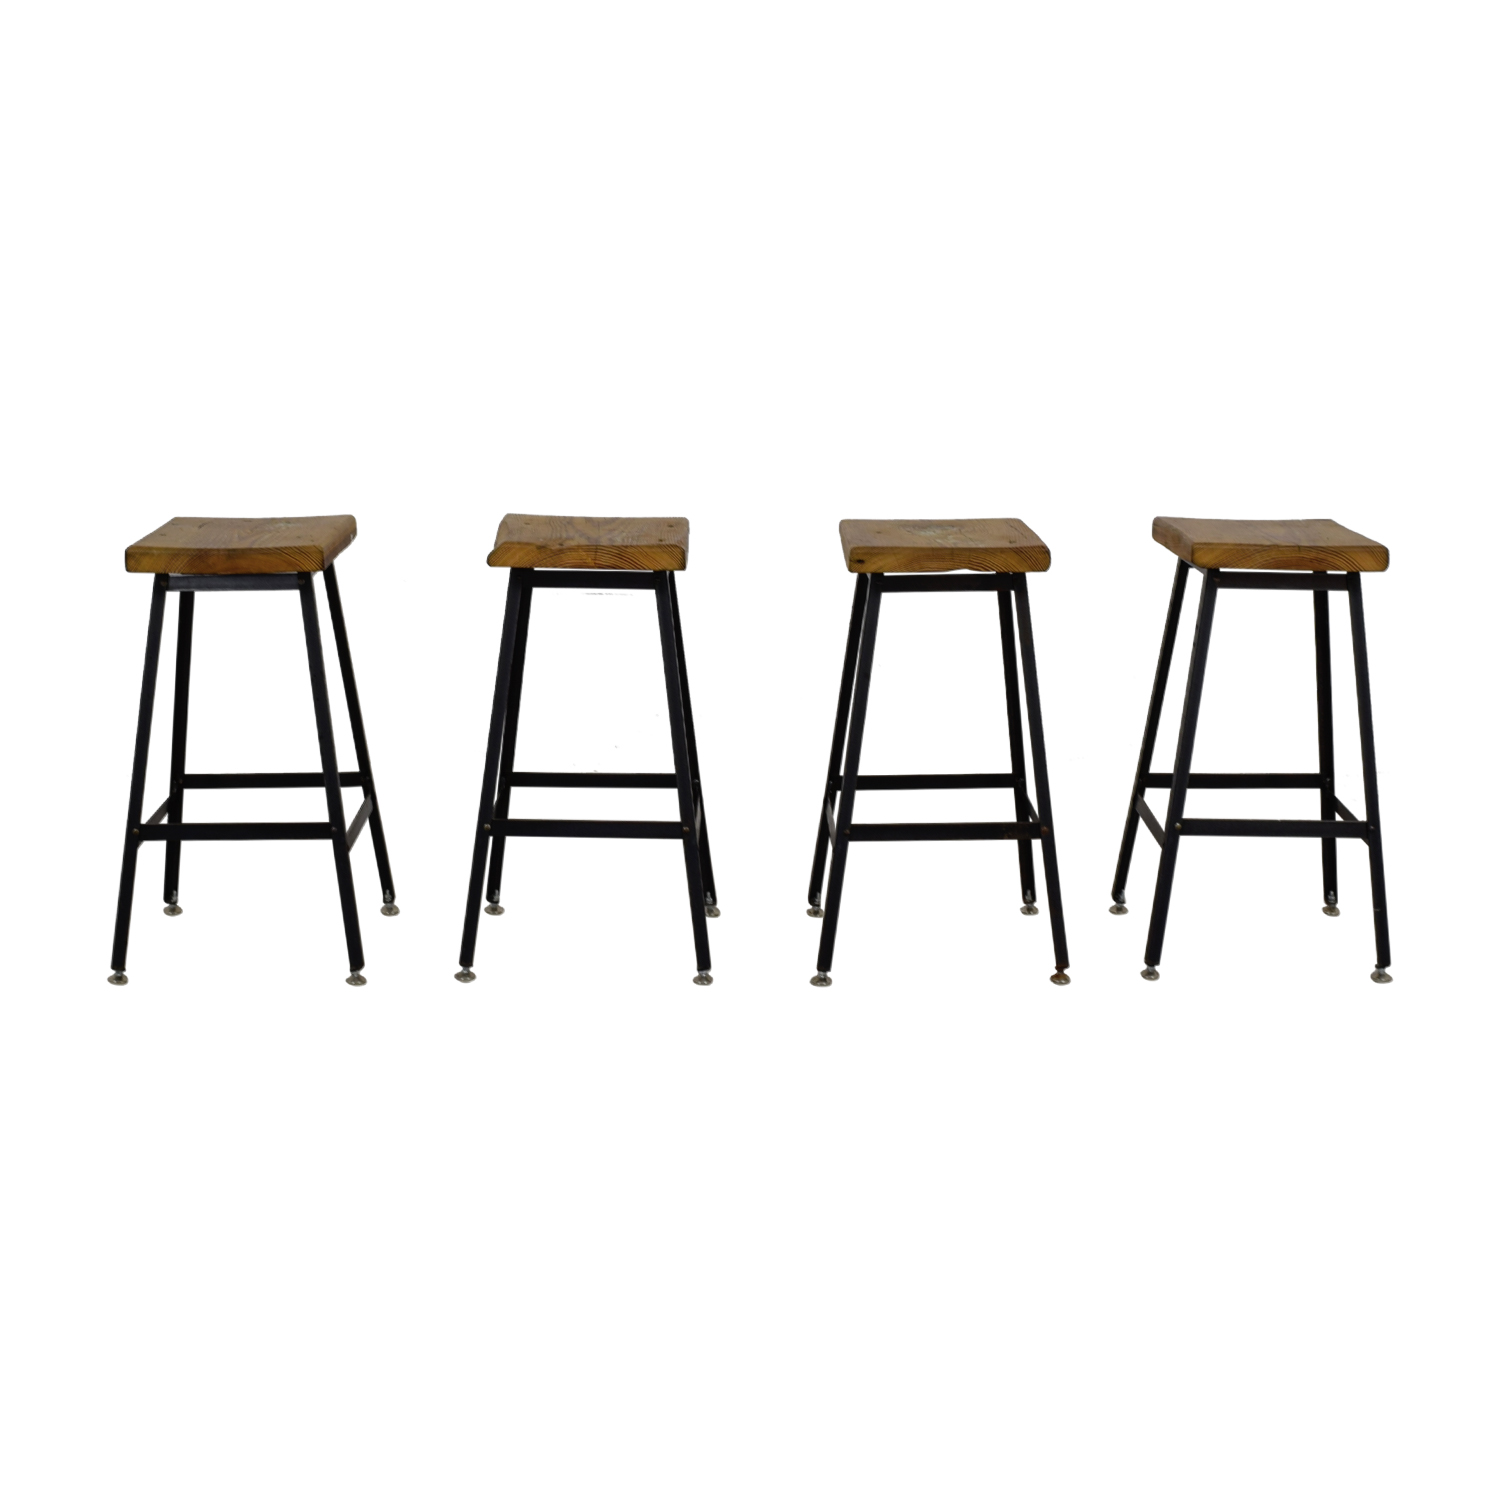 shop Urban Wood Goods Reclaimed Wood Bar Stools Urban Wood Goods